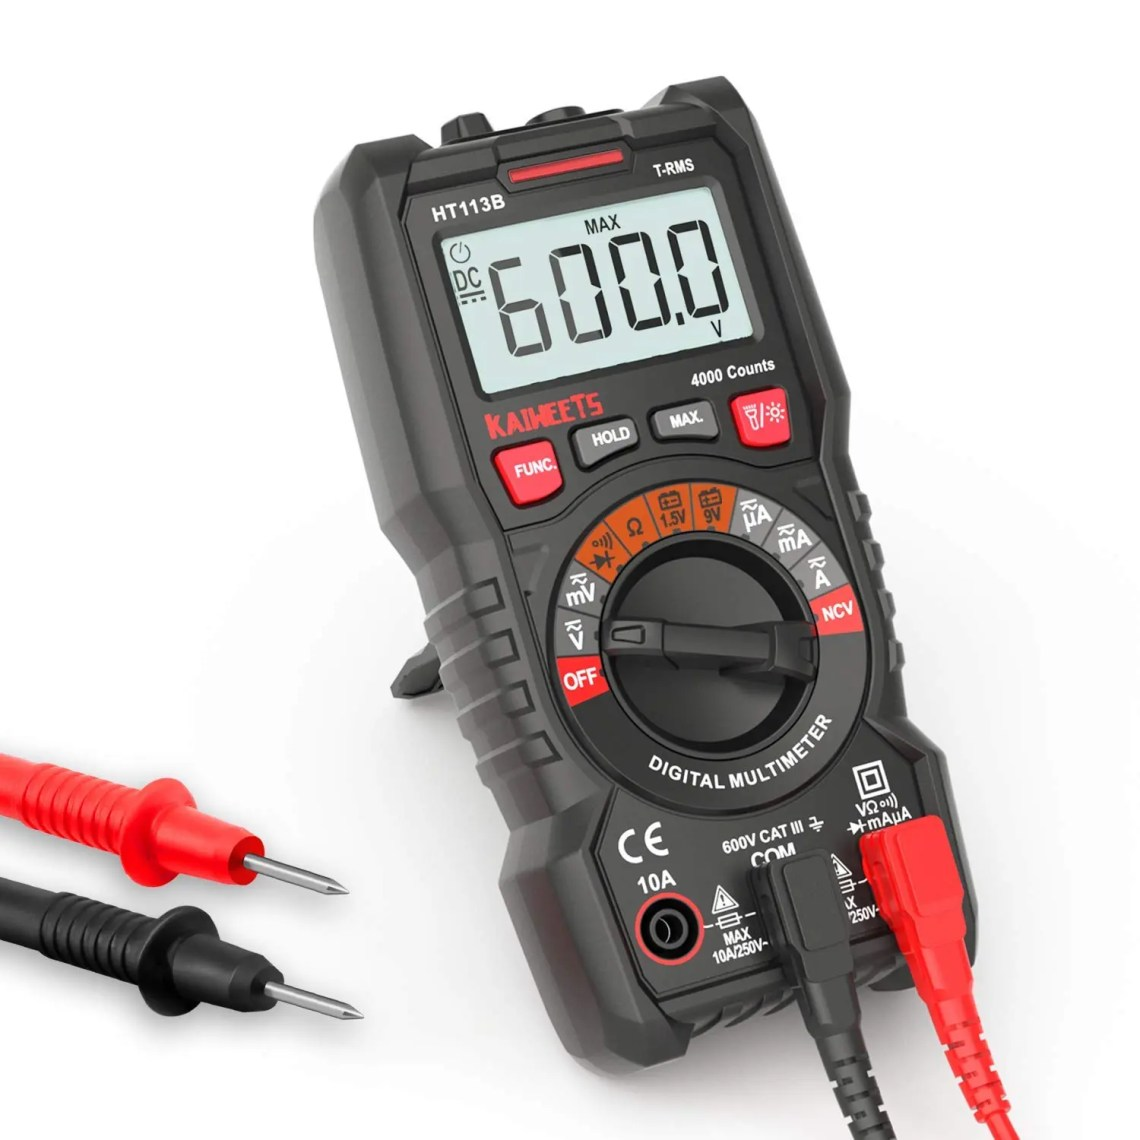 How To Use A Multimeter To Test A Fuse?